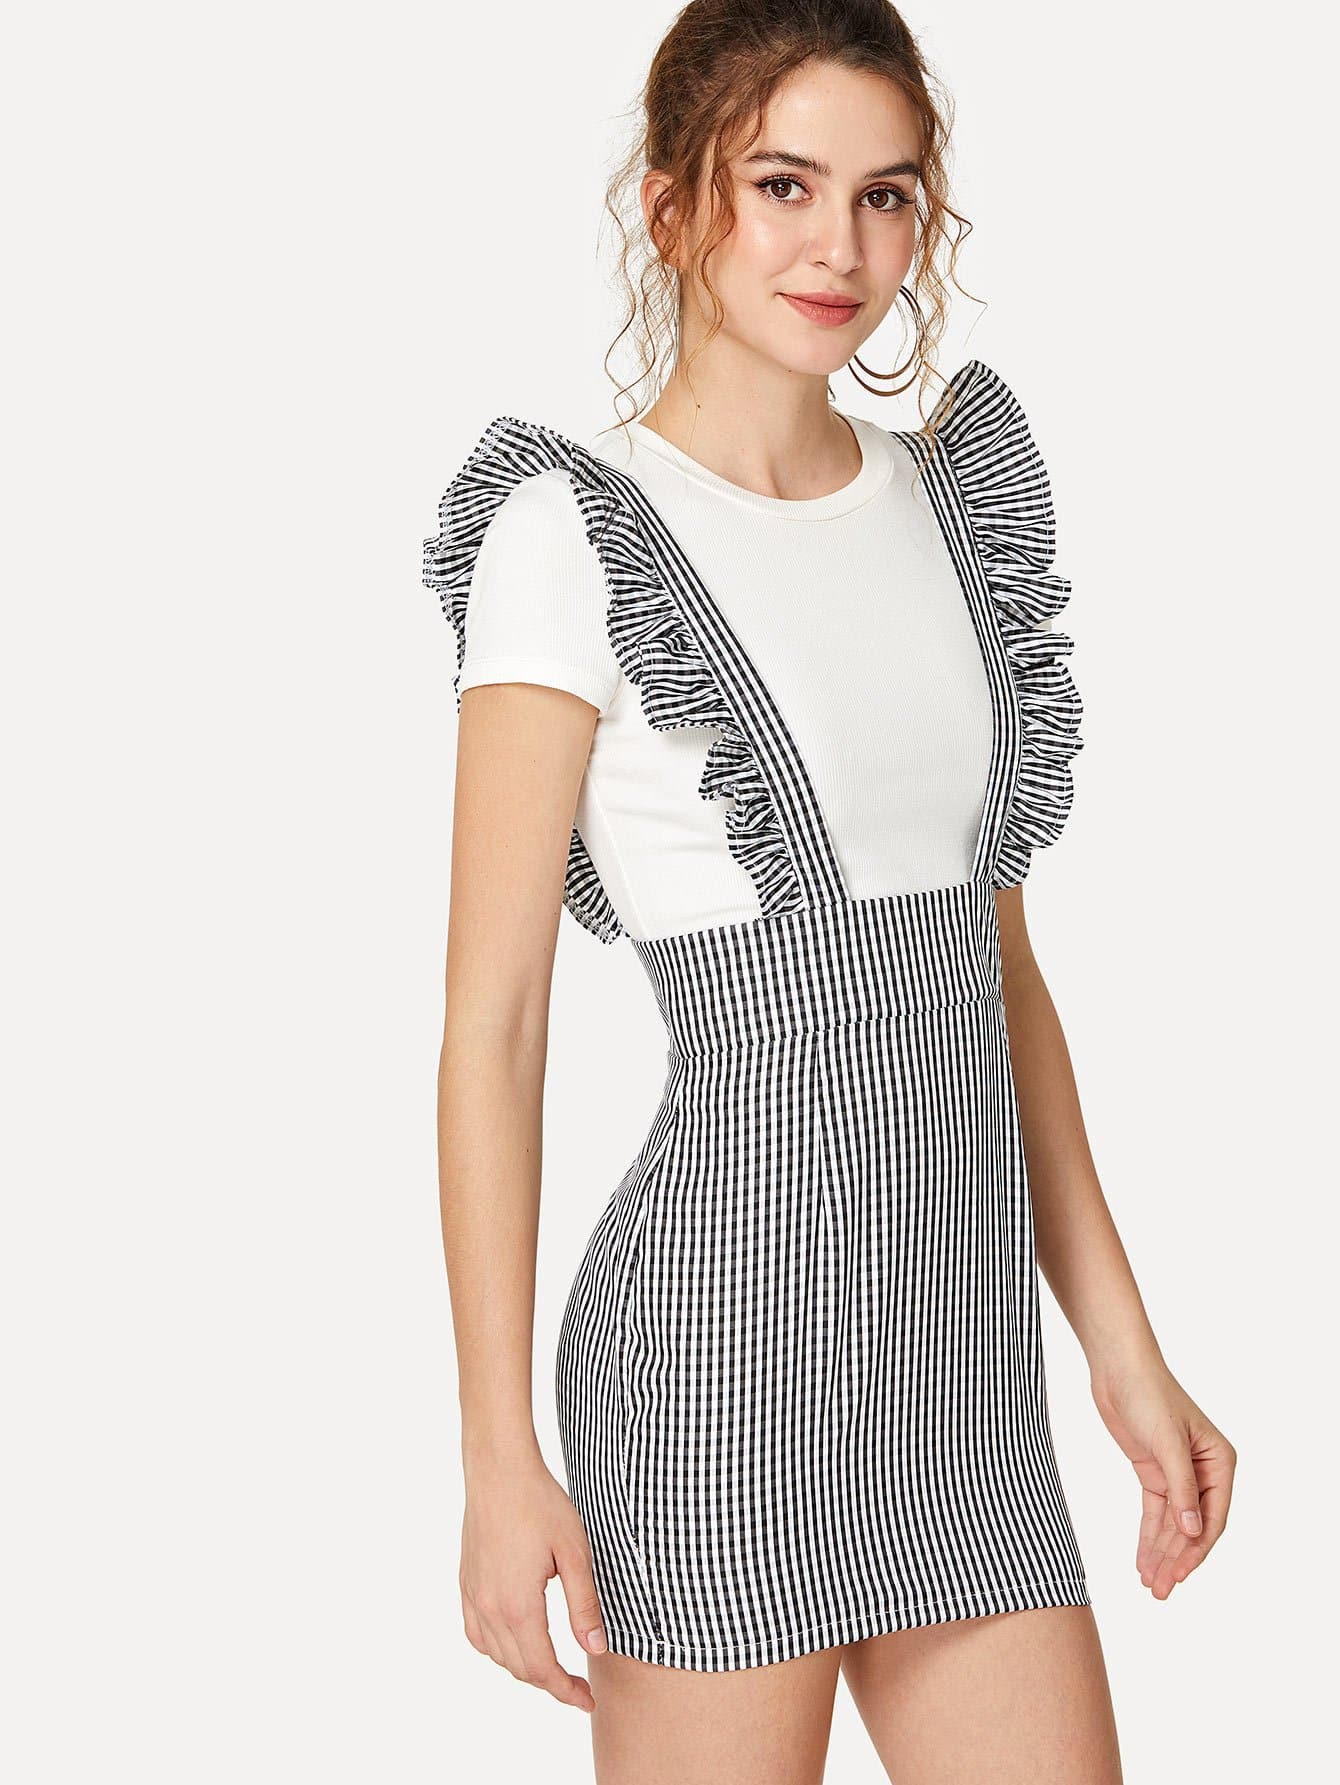 Ruffle Trim Gingham Overall overall anabelle overall